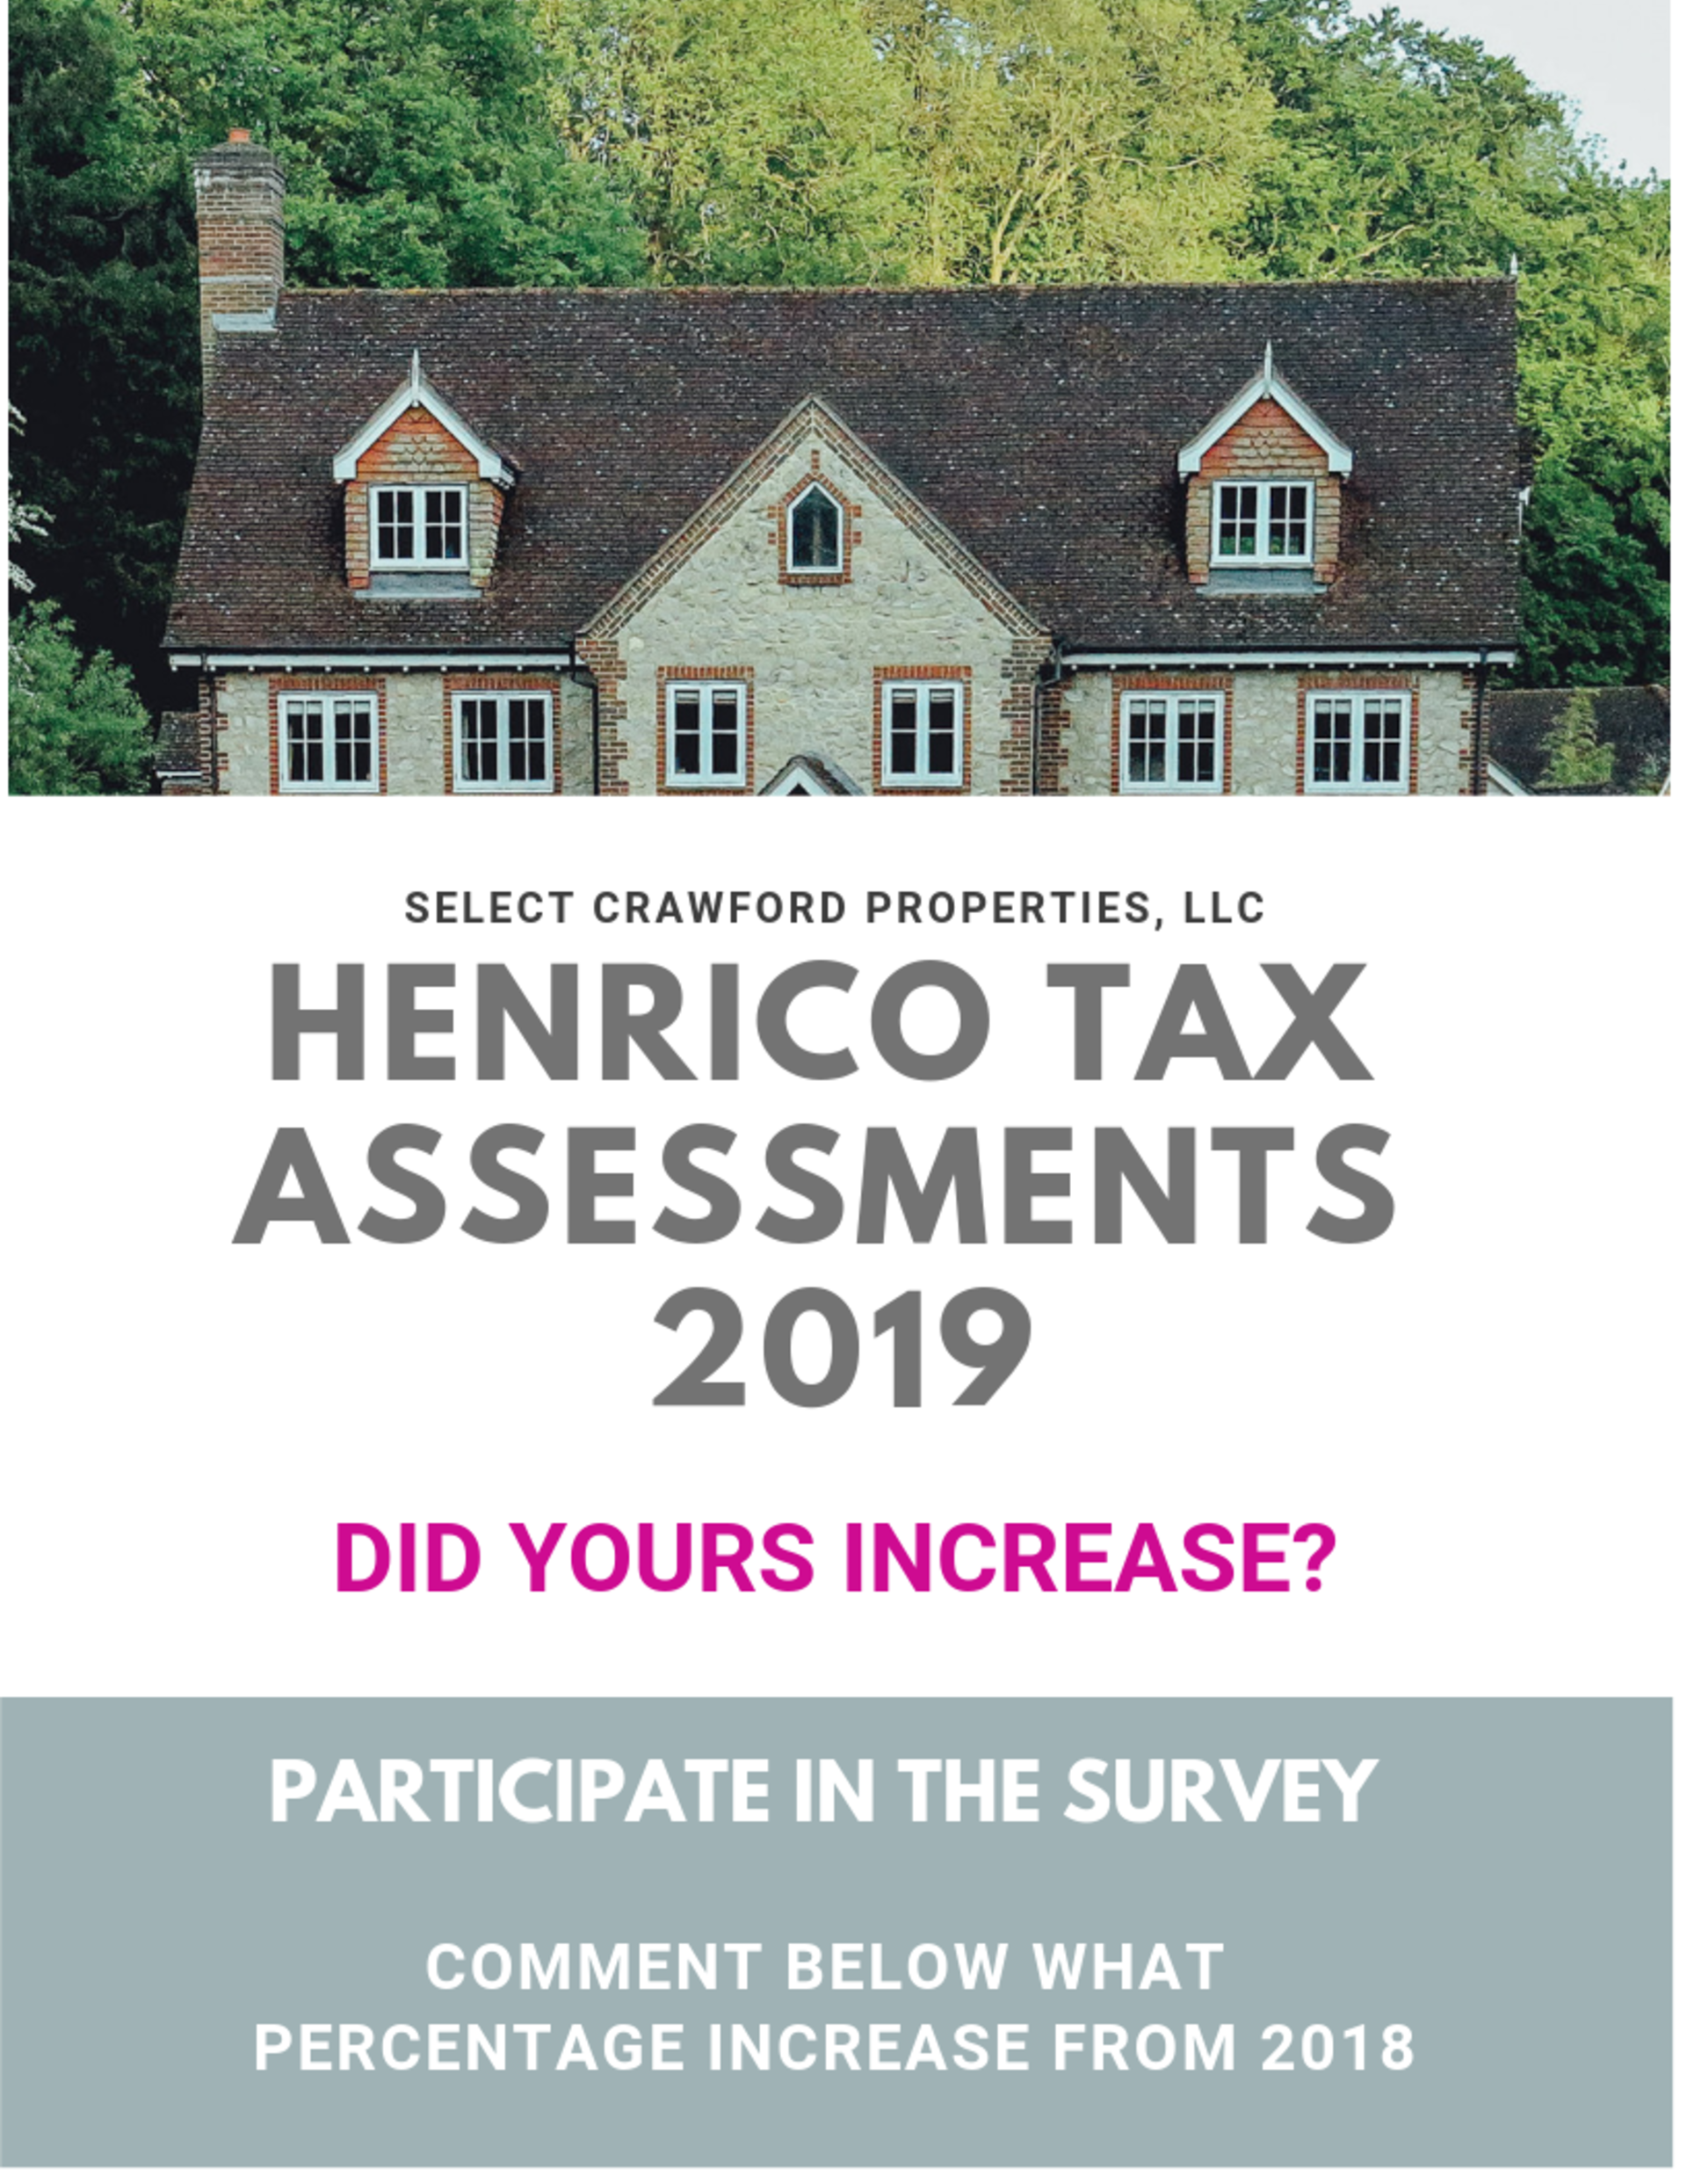 HENRICO TAX ASSESSMENTS ON THE RISE!